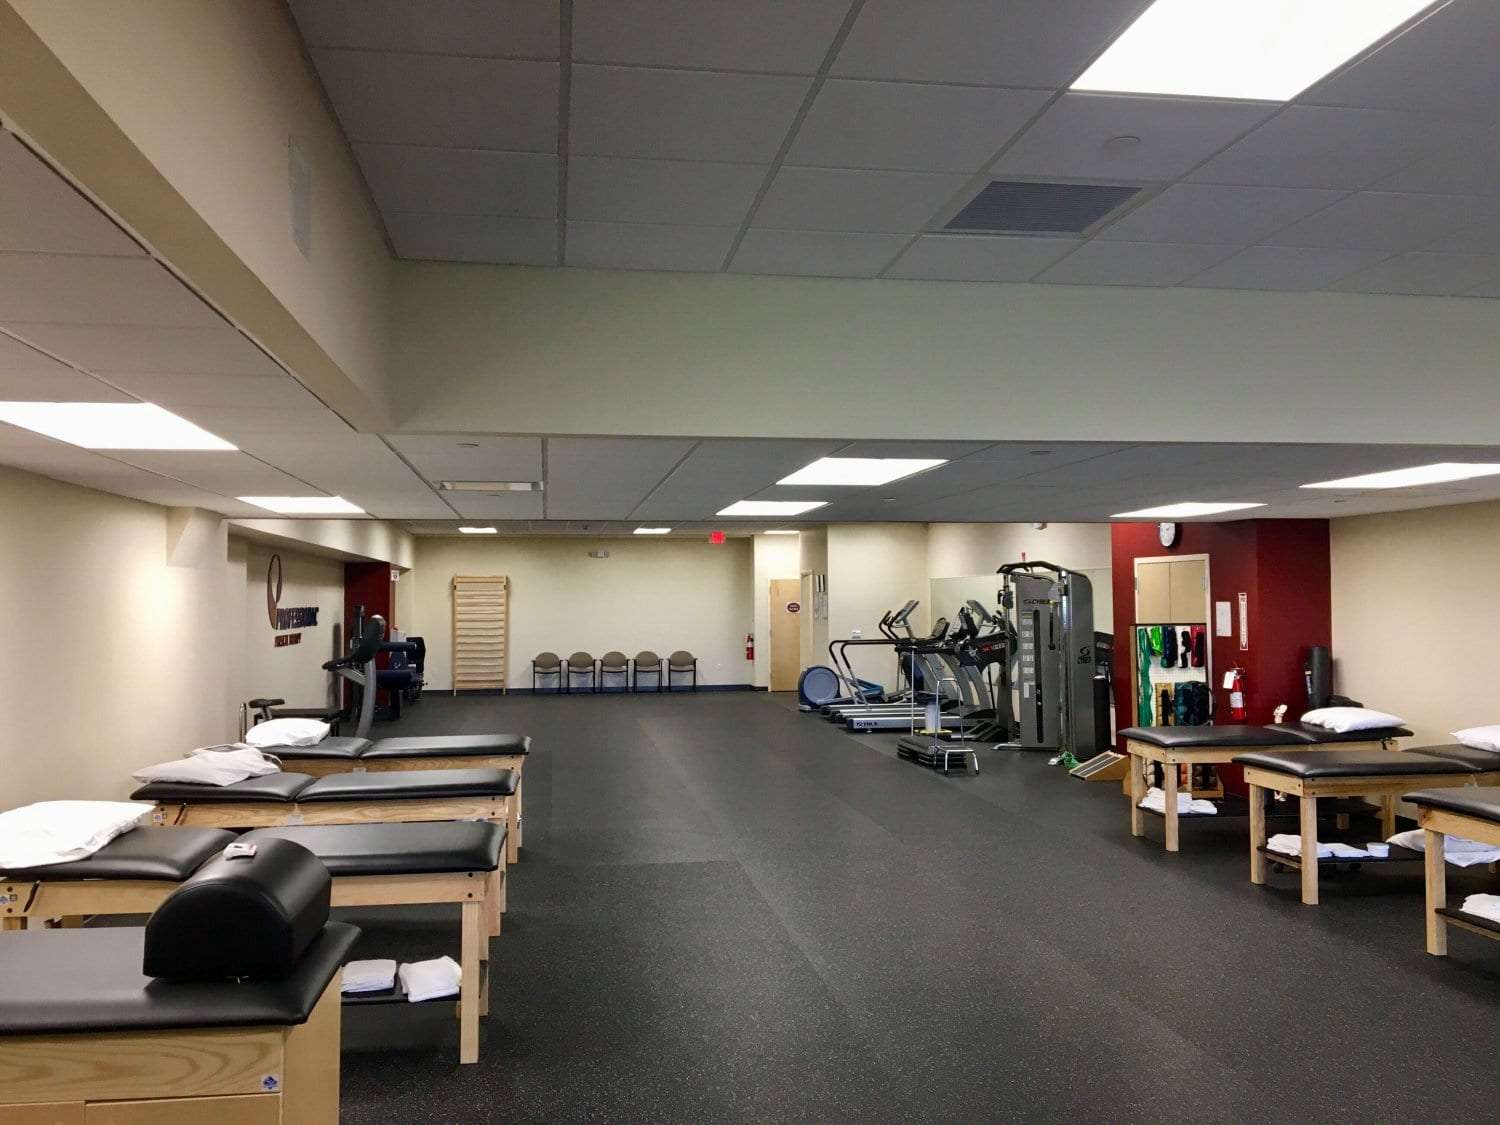 An image of the interior of our physical therapy clinic in Morristown, New Jersey at Headquarters Plaza.